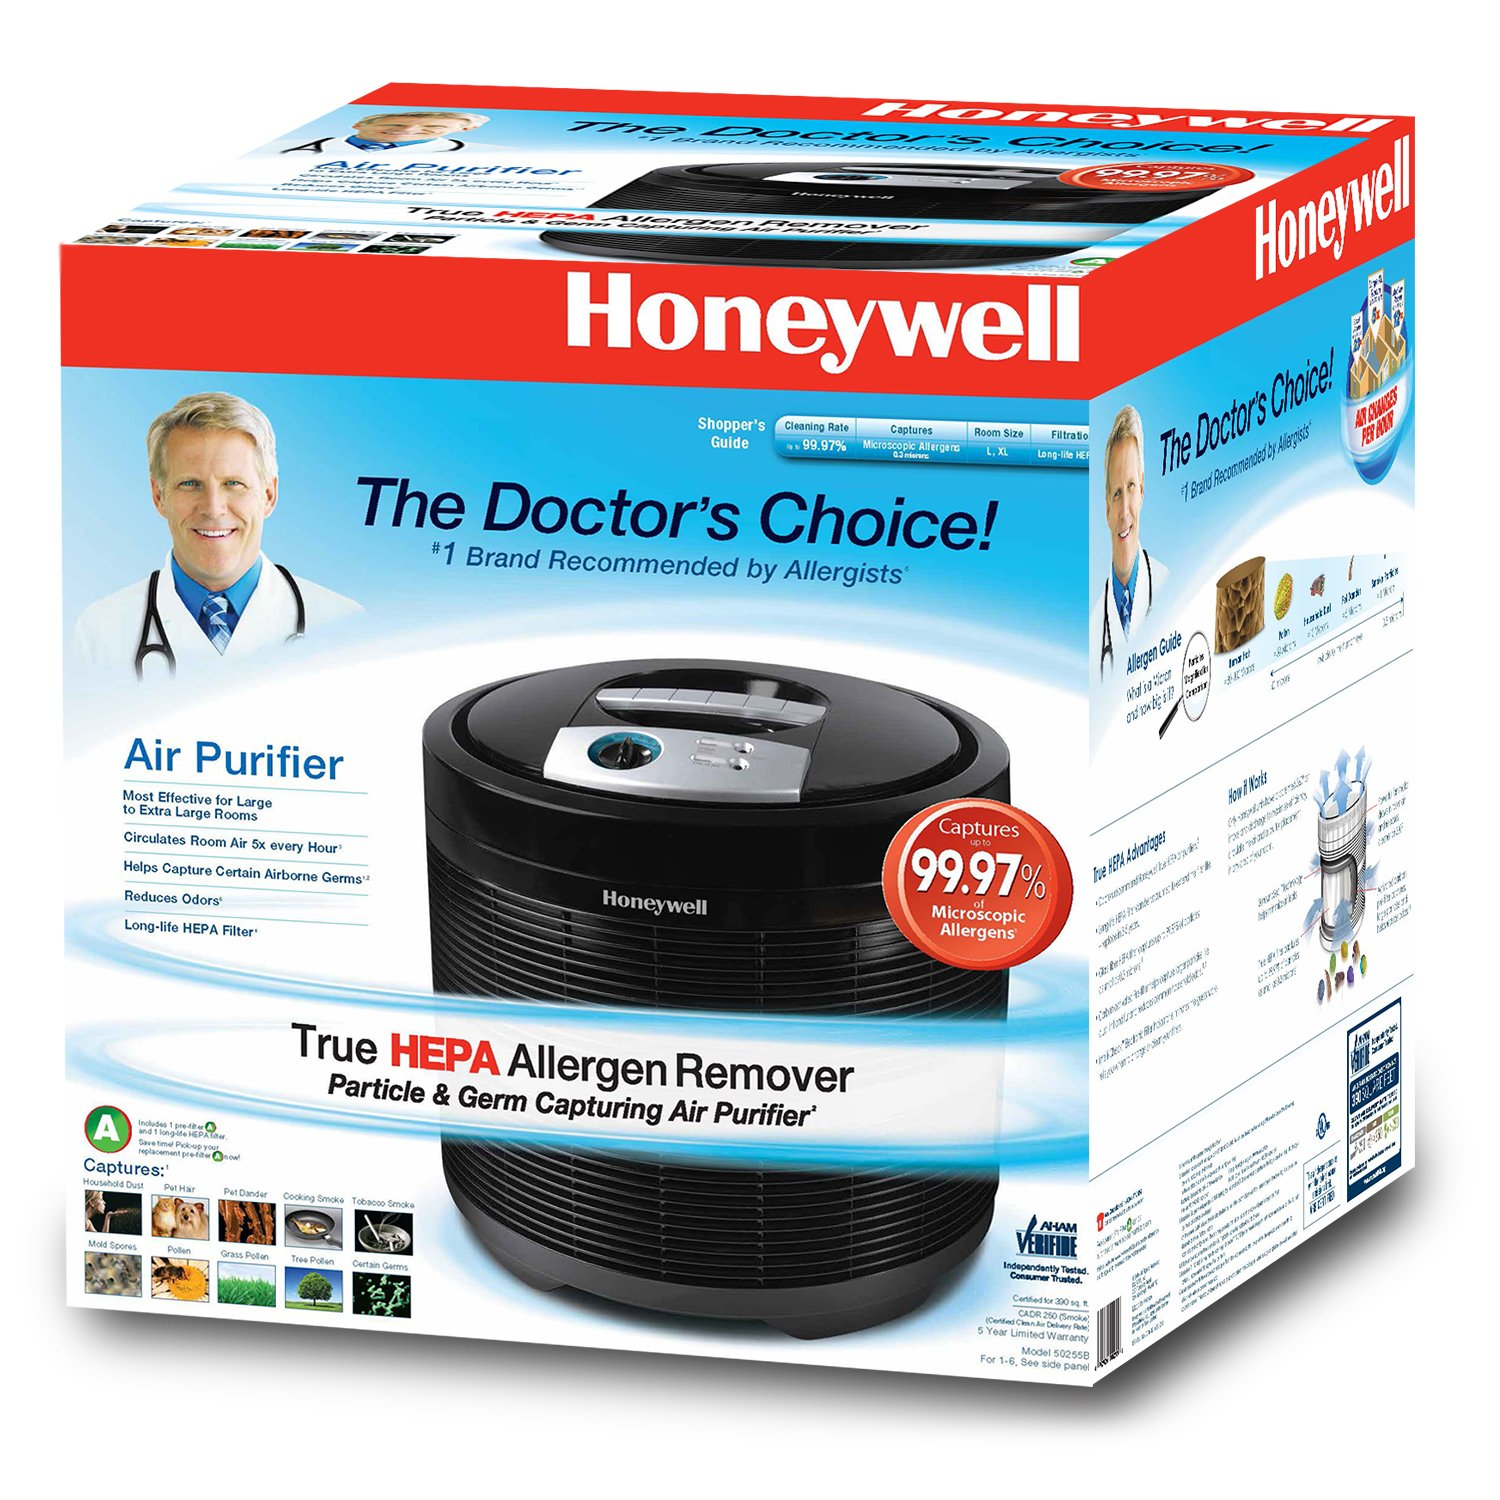 amazoncom honeywell 50255b true hepa allergen remover air purifier black home u0026 kitchen - Honeywell Hepa Air Purifier